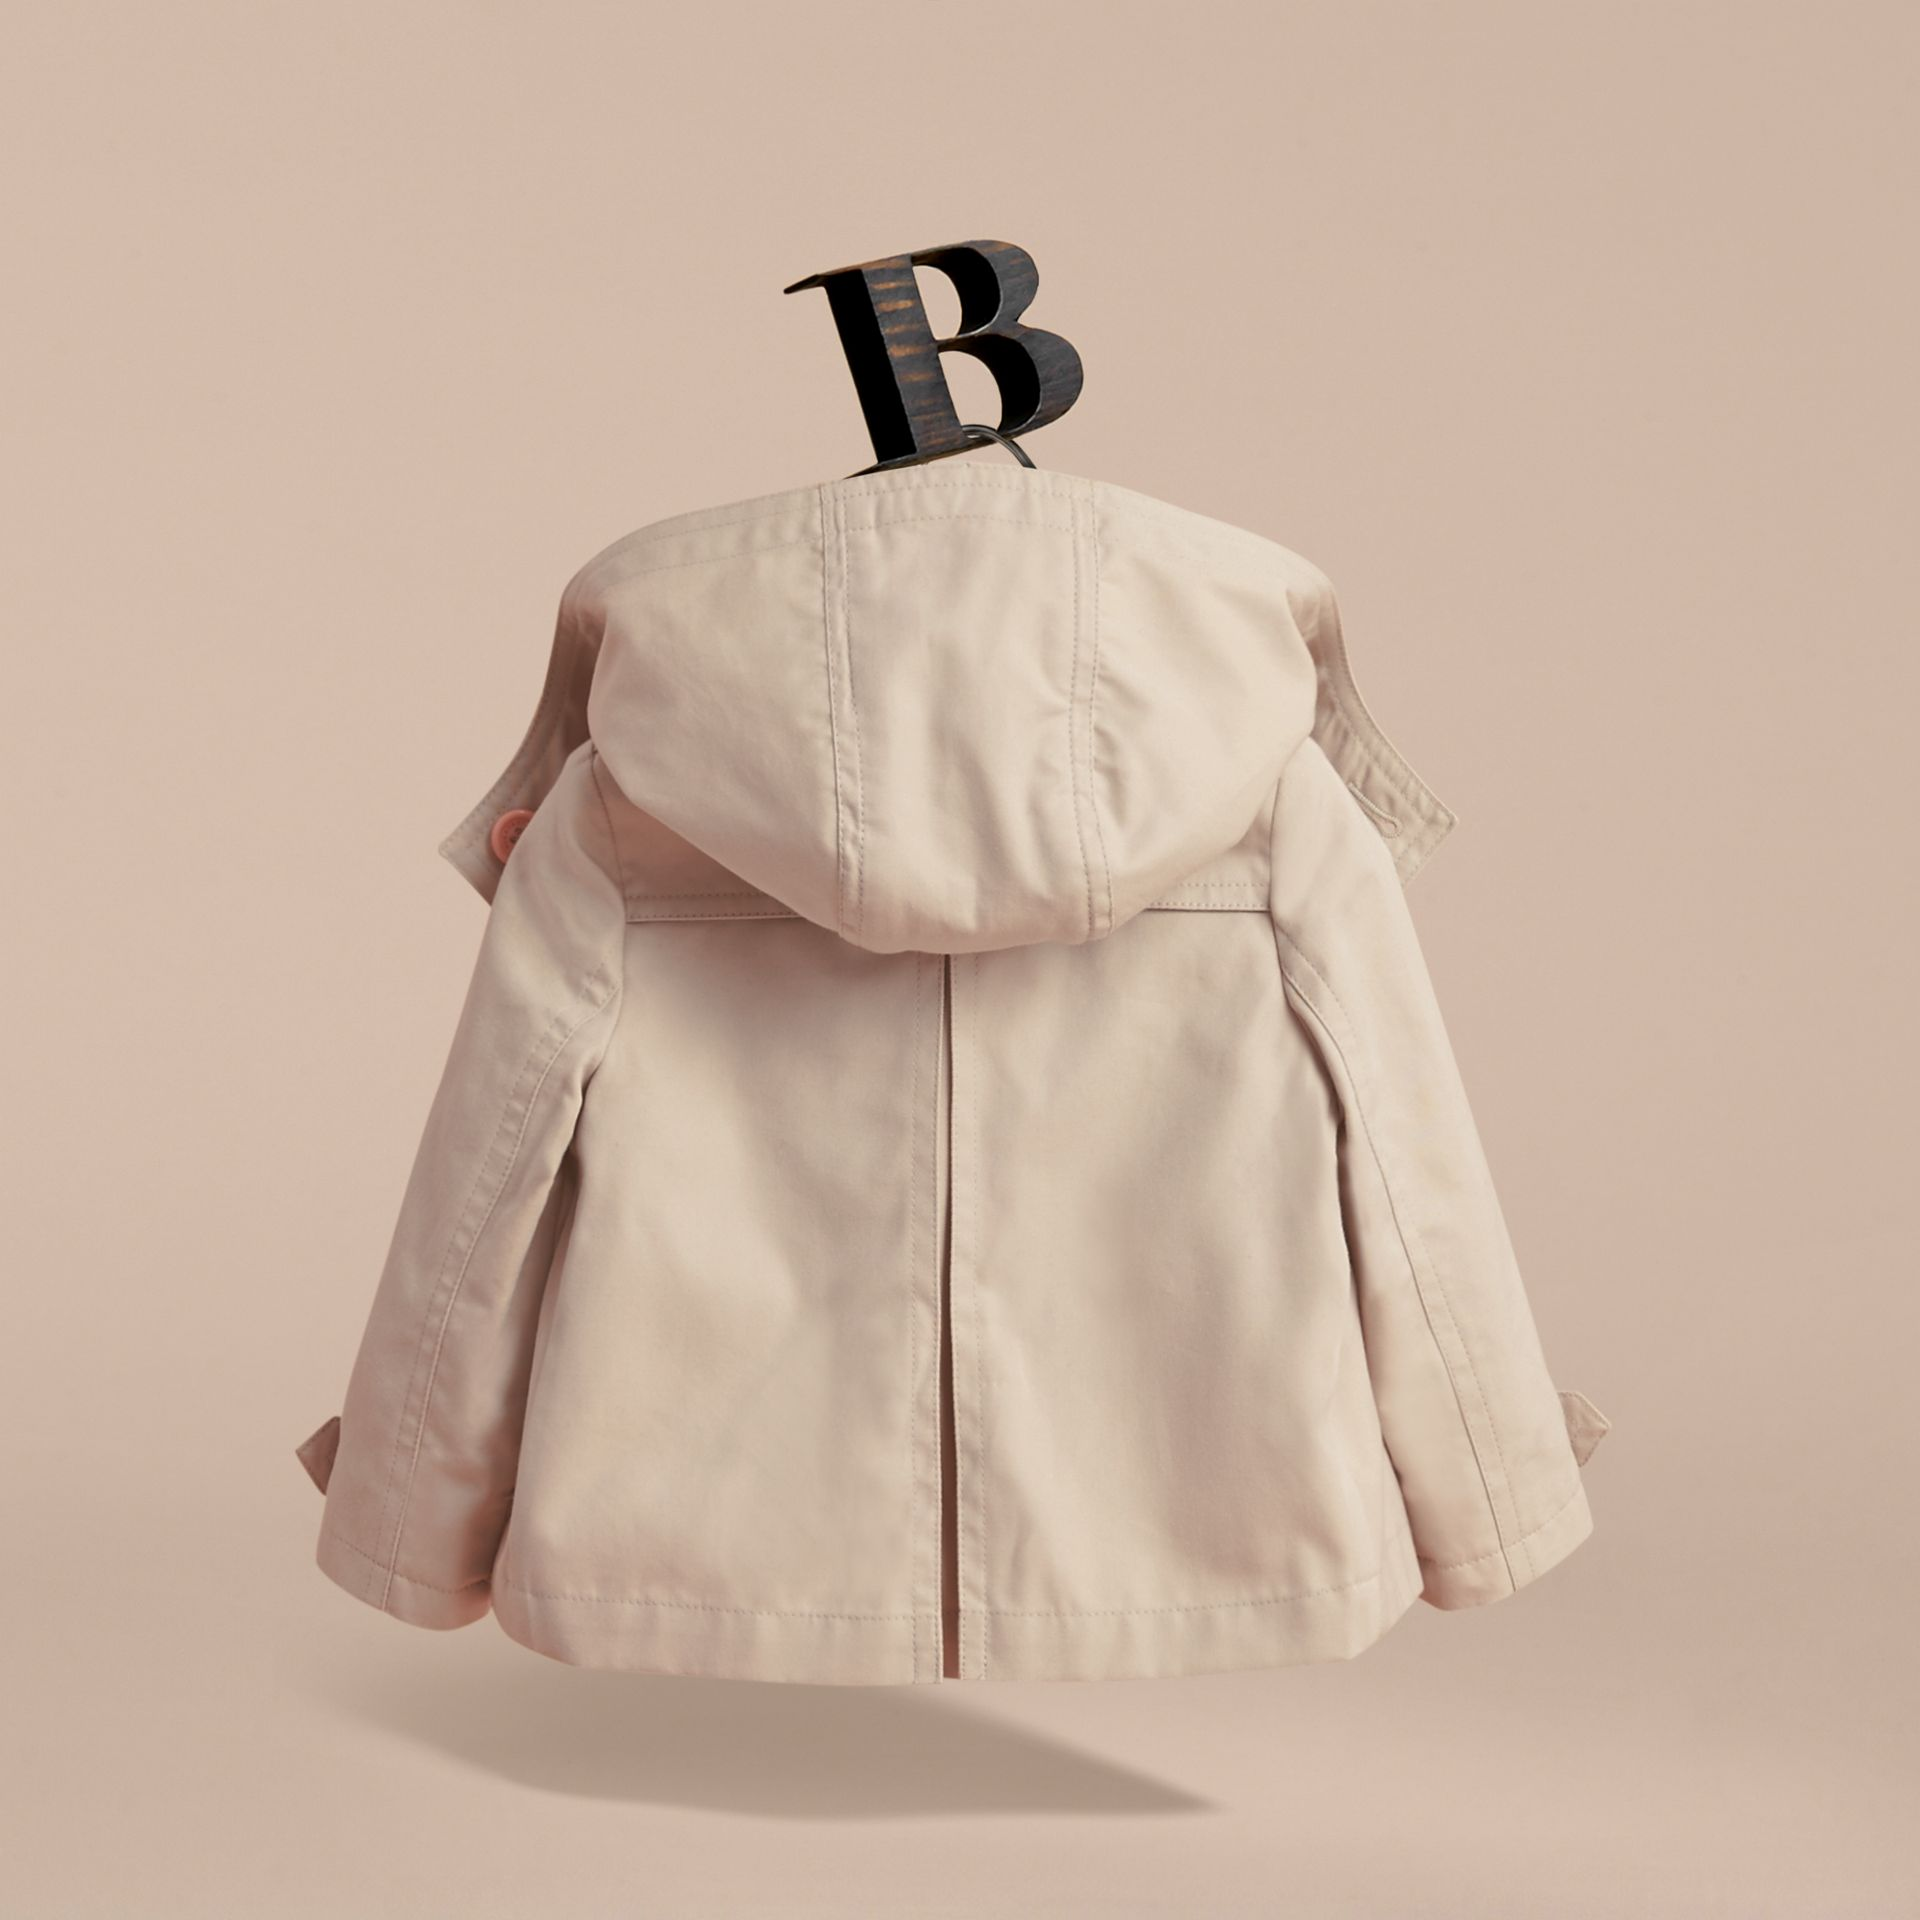 Resin Button Cotton A-line Jacket  with Detachable Hood | Burberry - gallery image 4